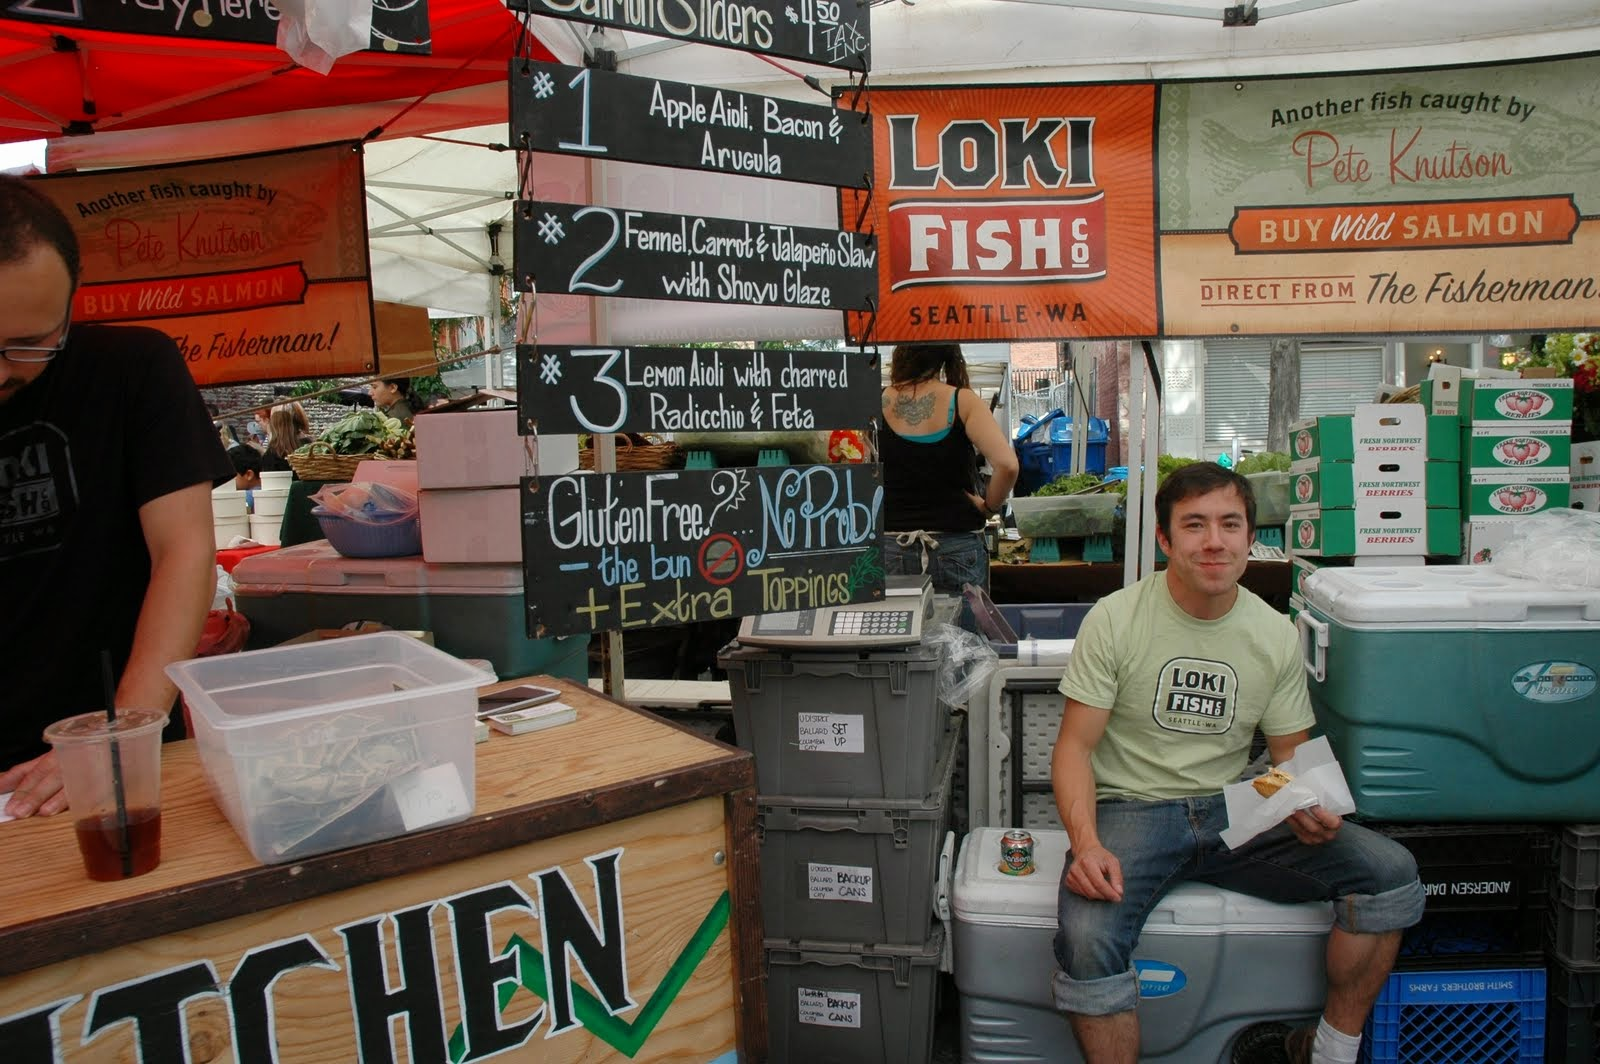 The Ballard Farmer's Market is a gluten-abstainer's paradise. Most vendors either have gluten-free options or only offer gluten-free fare. The same goes for vegetarian, vegan, and dairy-free foods. Pictured: Loki Fish Co.